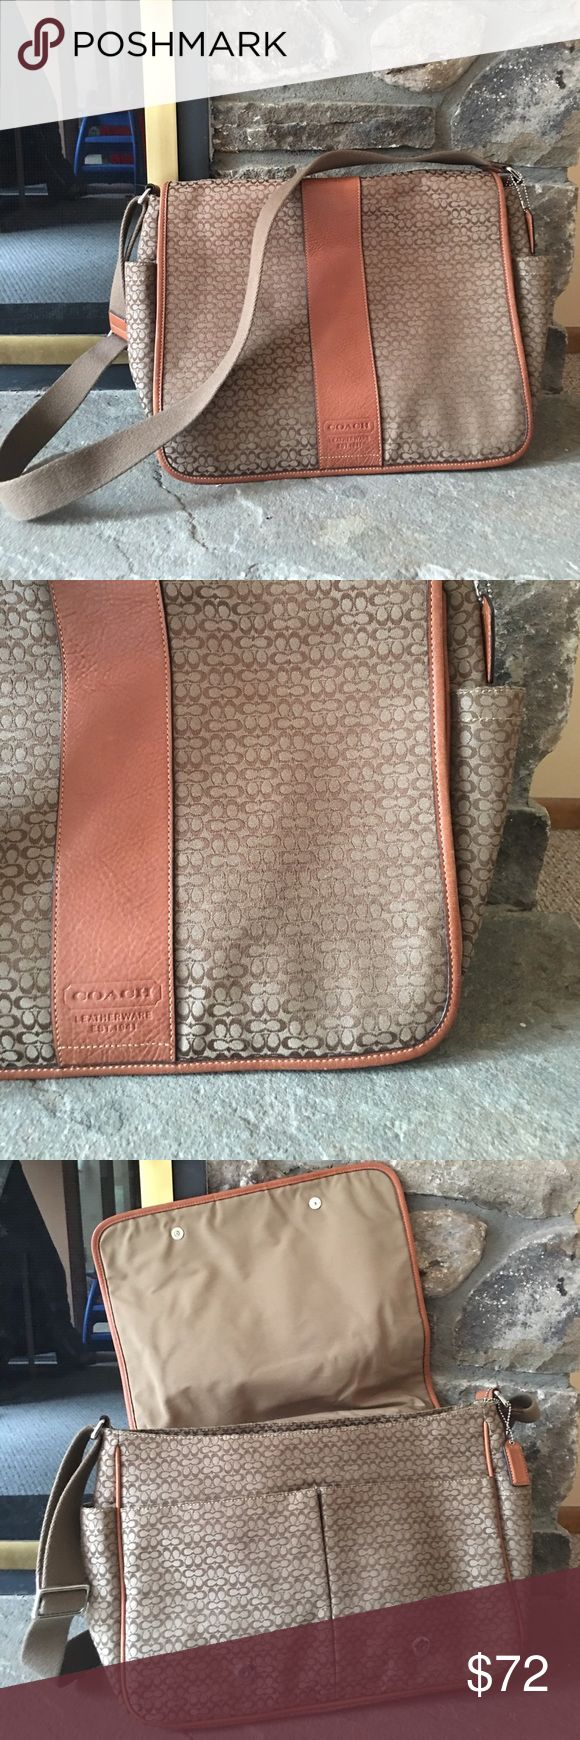 Coach messenger bag Light wear. Messenger bag. Fits my computer (Mac book) and books plus side pocket for drinks. 1 or 2 small pen marks on the inside but overall it's in really good condition Coach Bags Laptop Bags